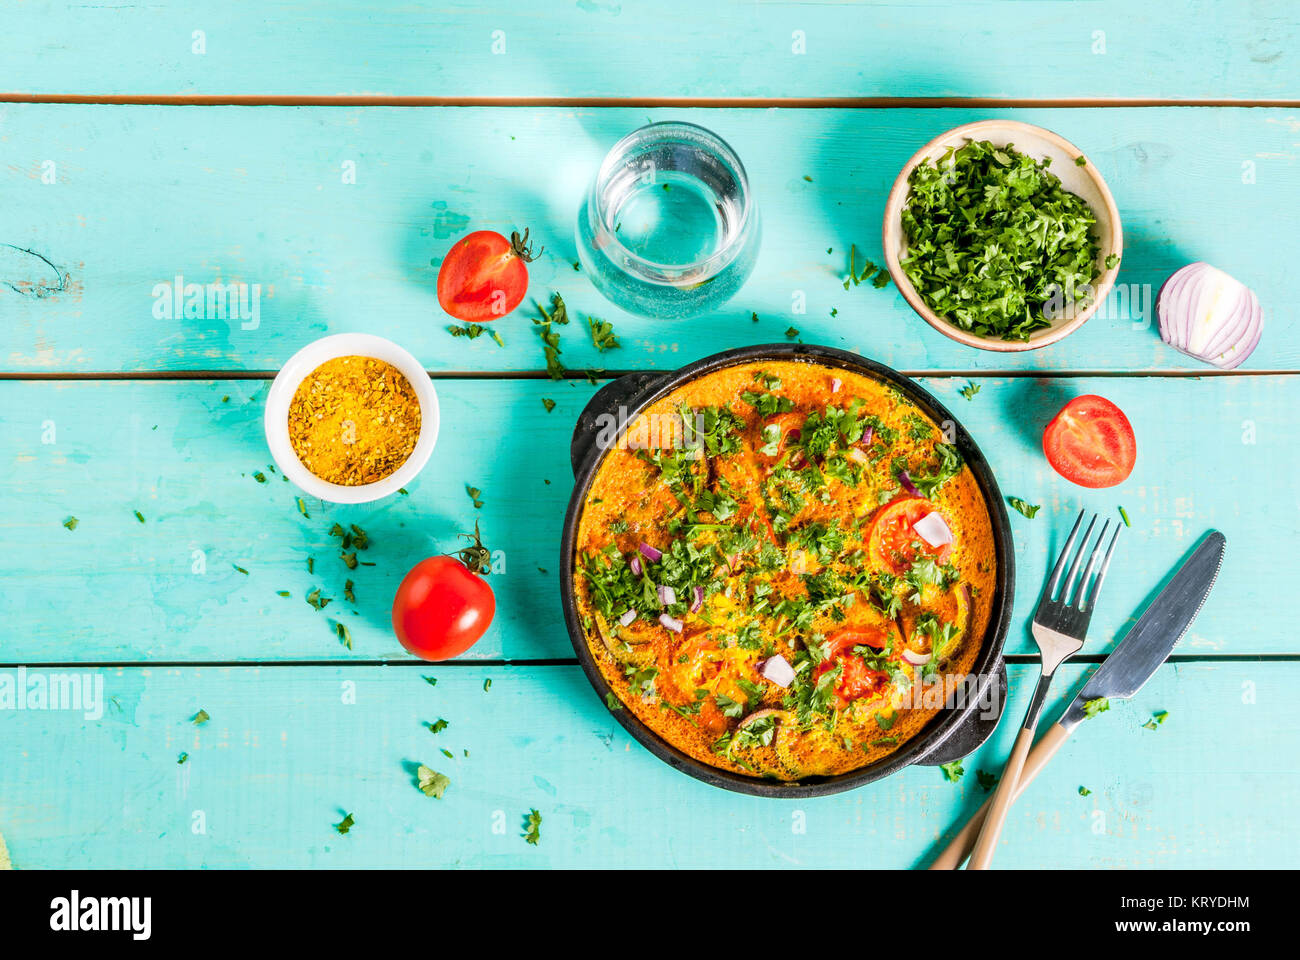 Indian food recipes indian masala egg omelet with fresh vegetables indian food recipes indian masala egg omelet with fresh vegetables tomato hot chili pepper parsley light blue wooden background copy space top forumfinder Gallery